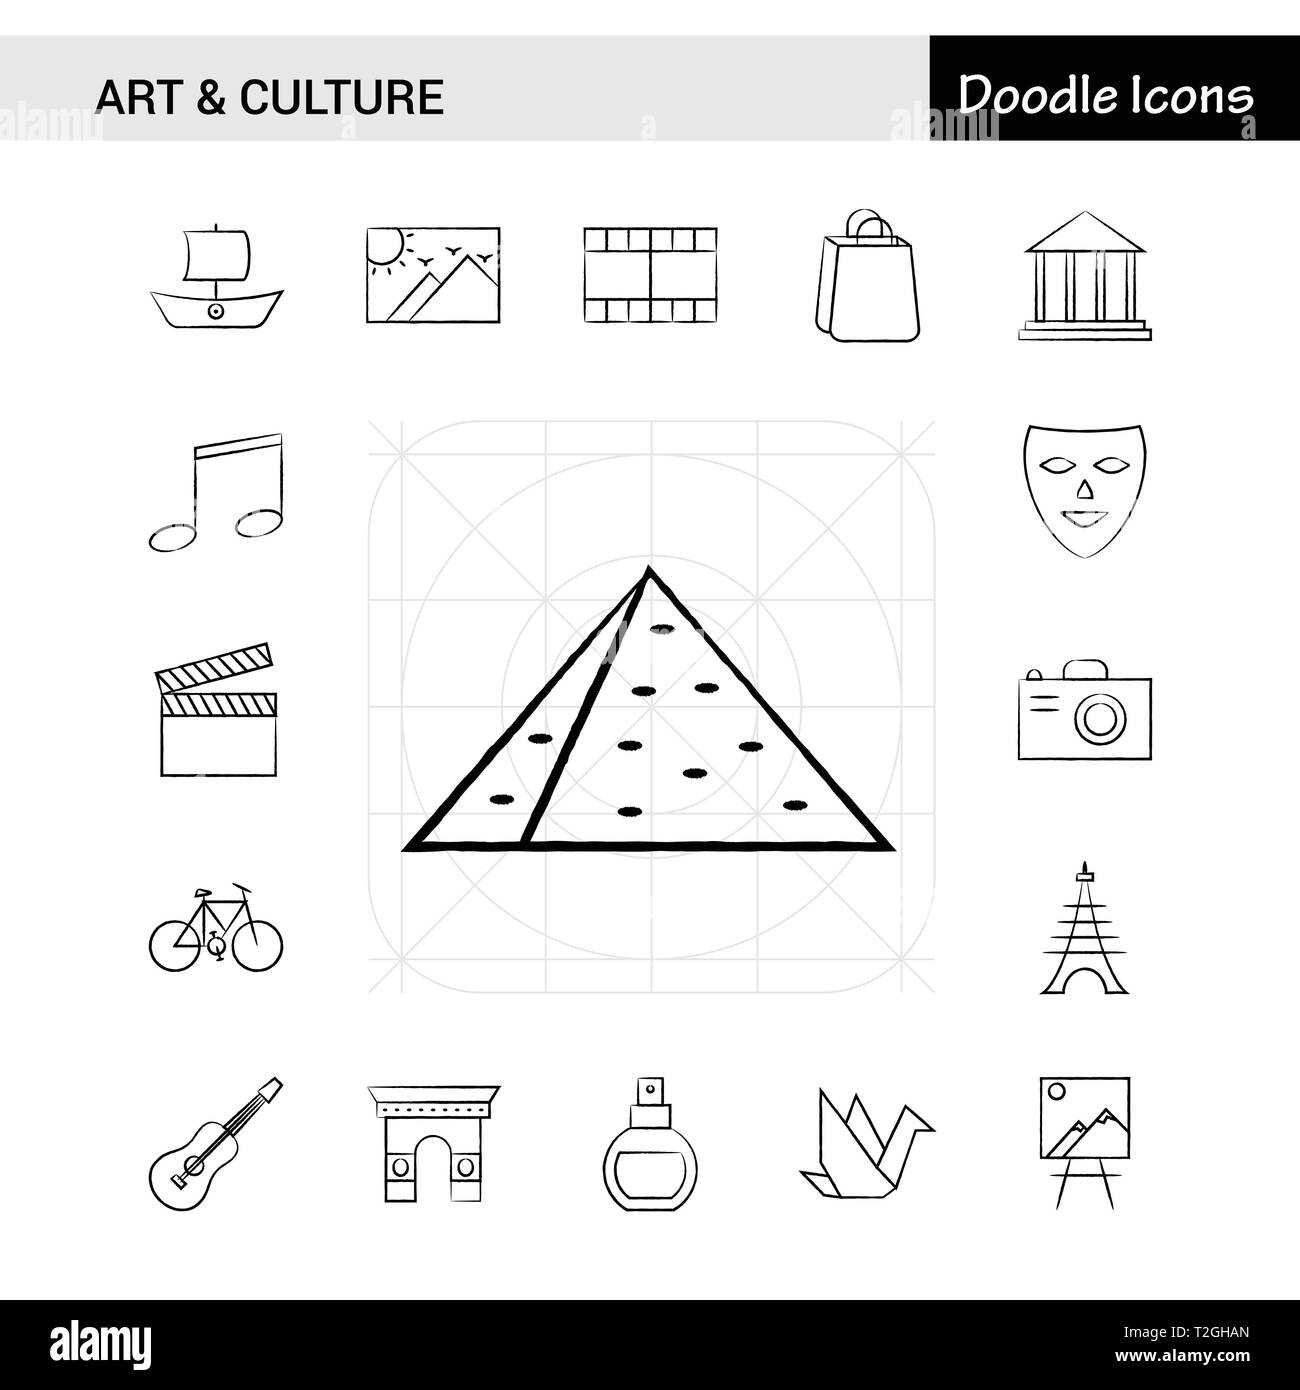 Set of 17 Art and Culture hand-drawn icon set - Stock Vector